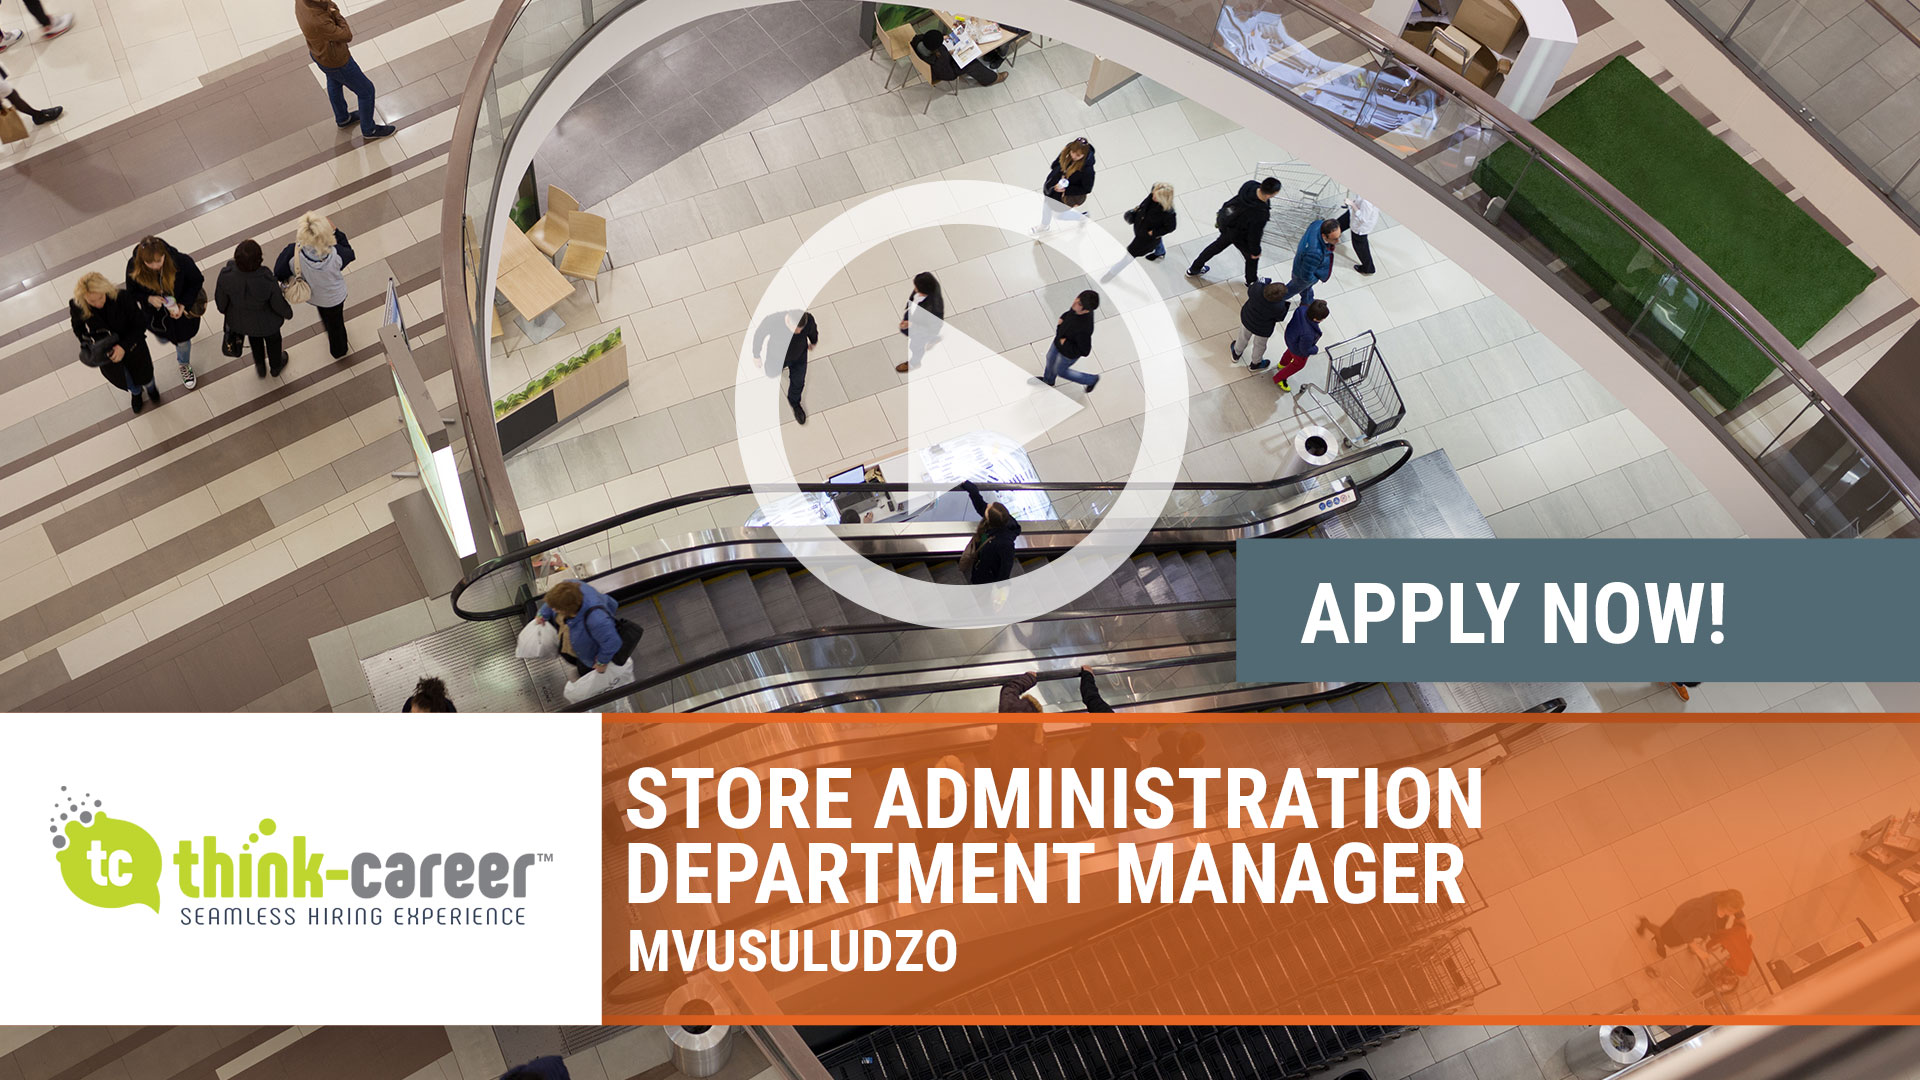 Watch our careers video for available job opening Store Administration Department Manager in Mvusuludzo